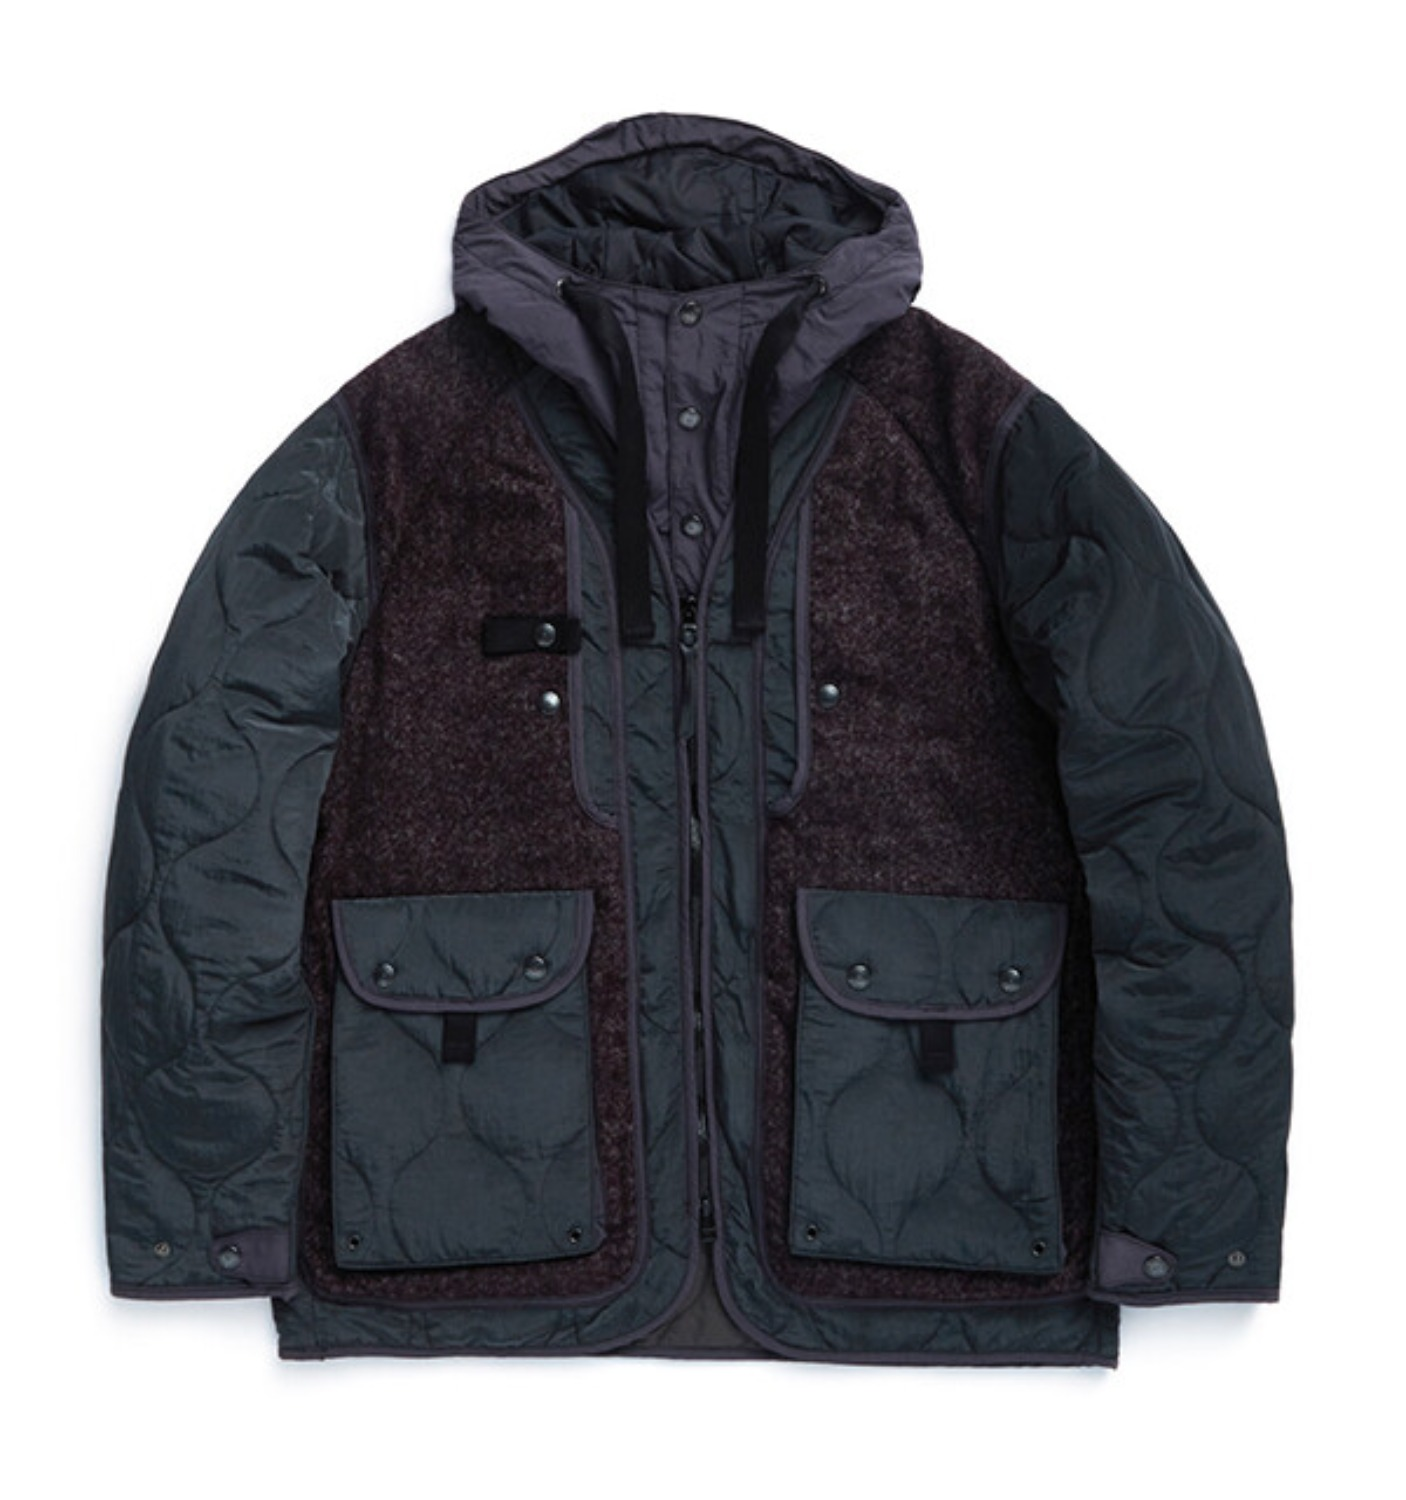 SHERPA PARKA BLACK PURPLE TOWEL